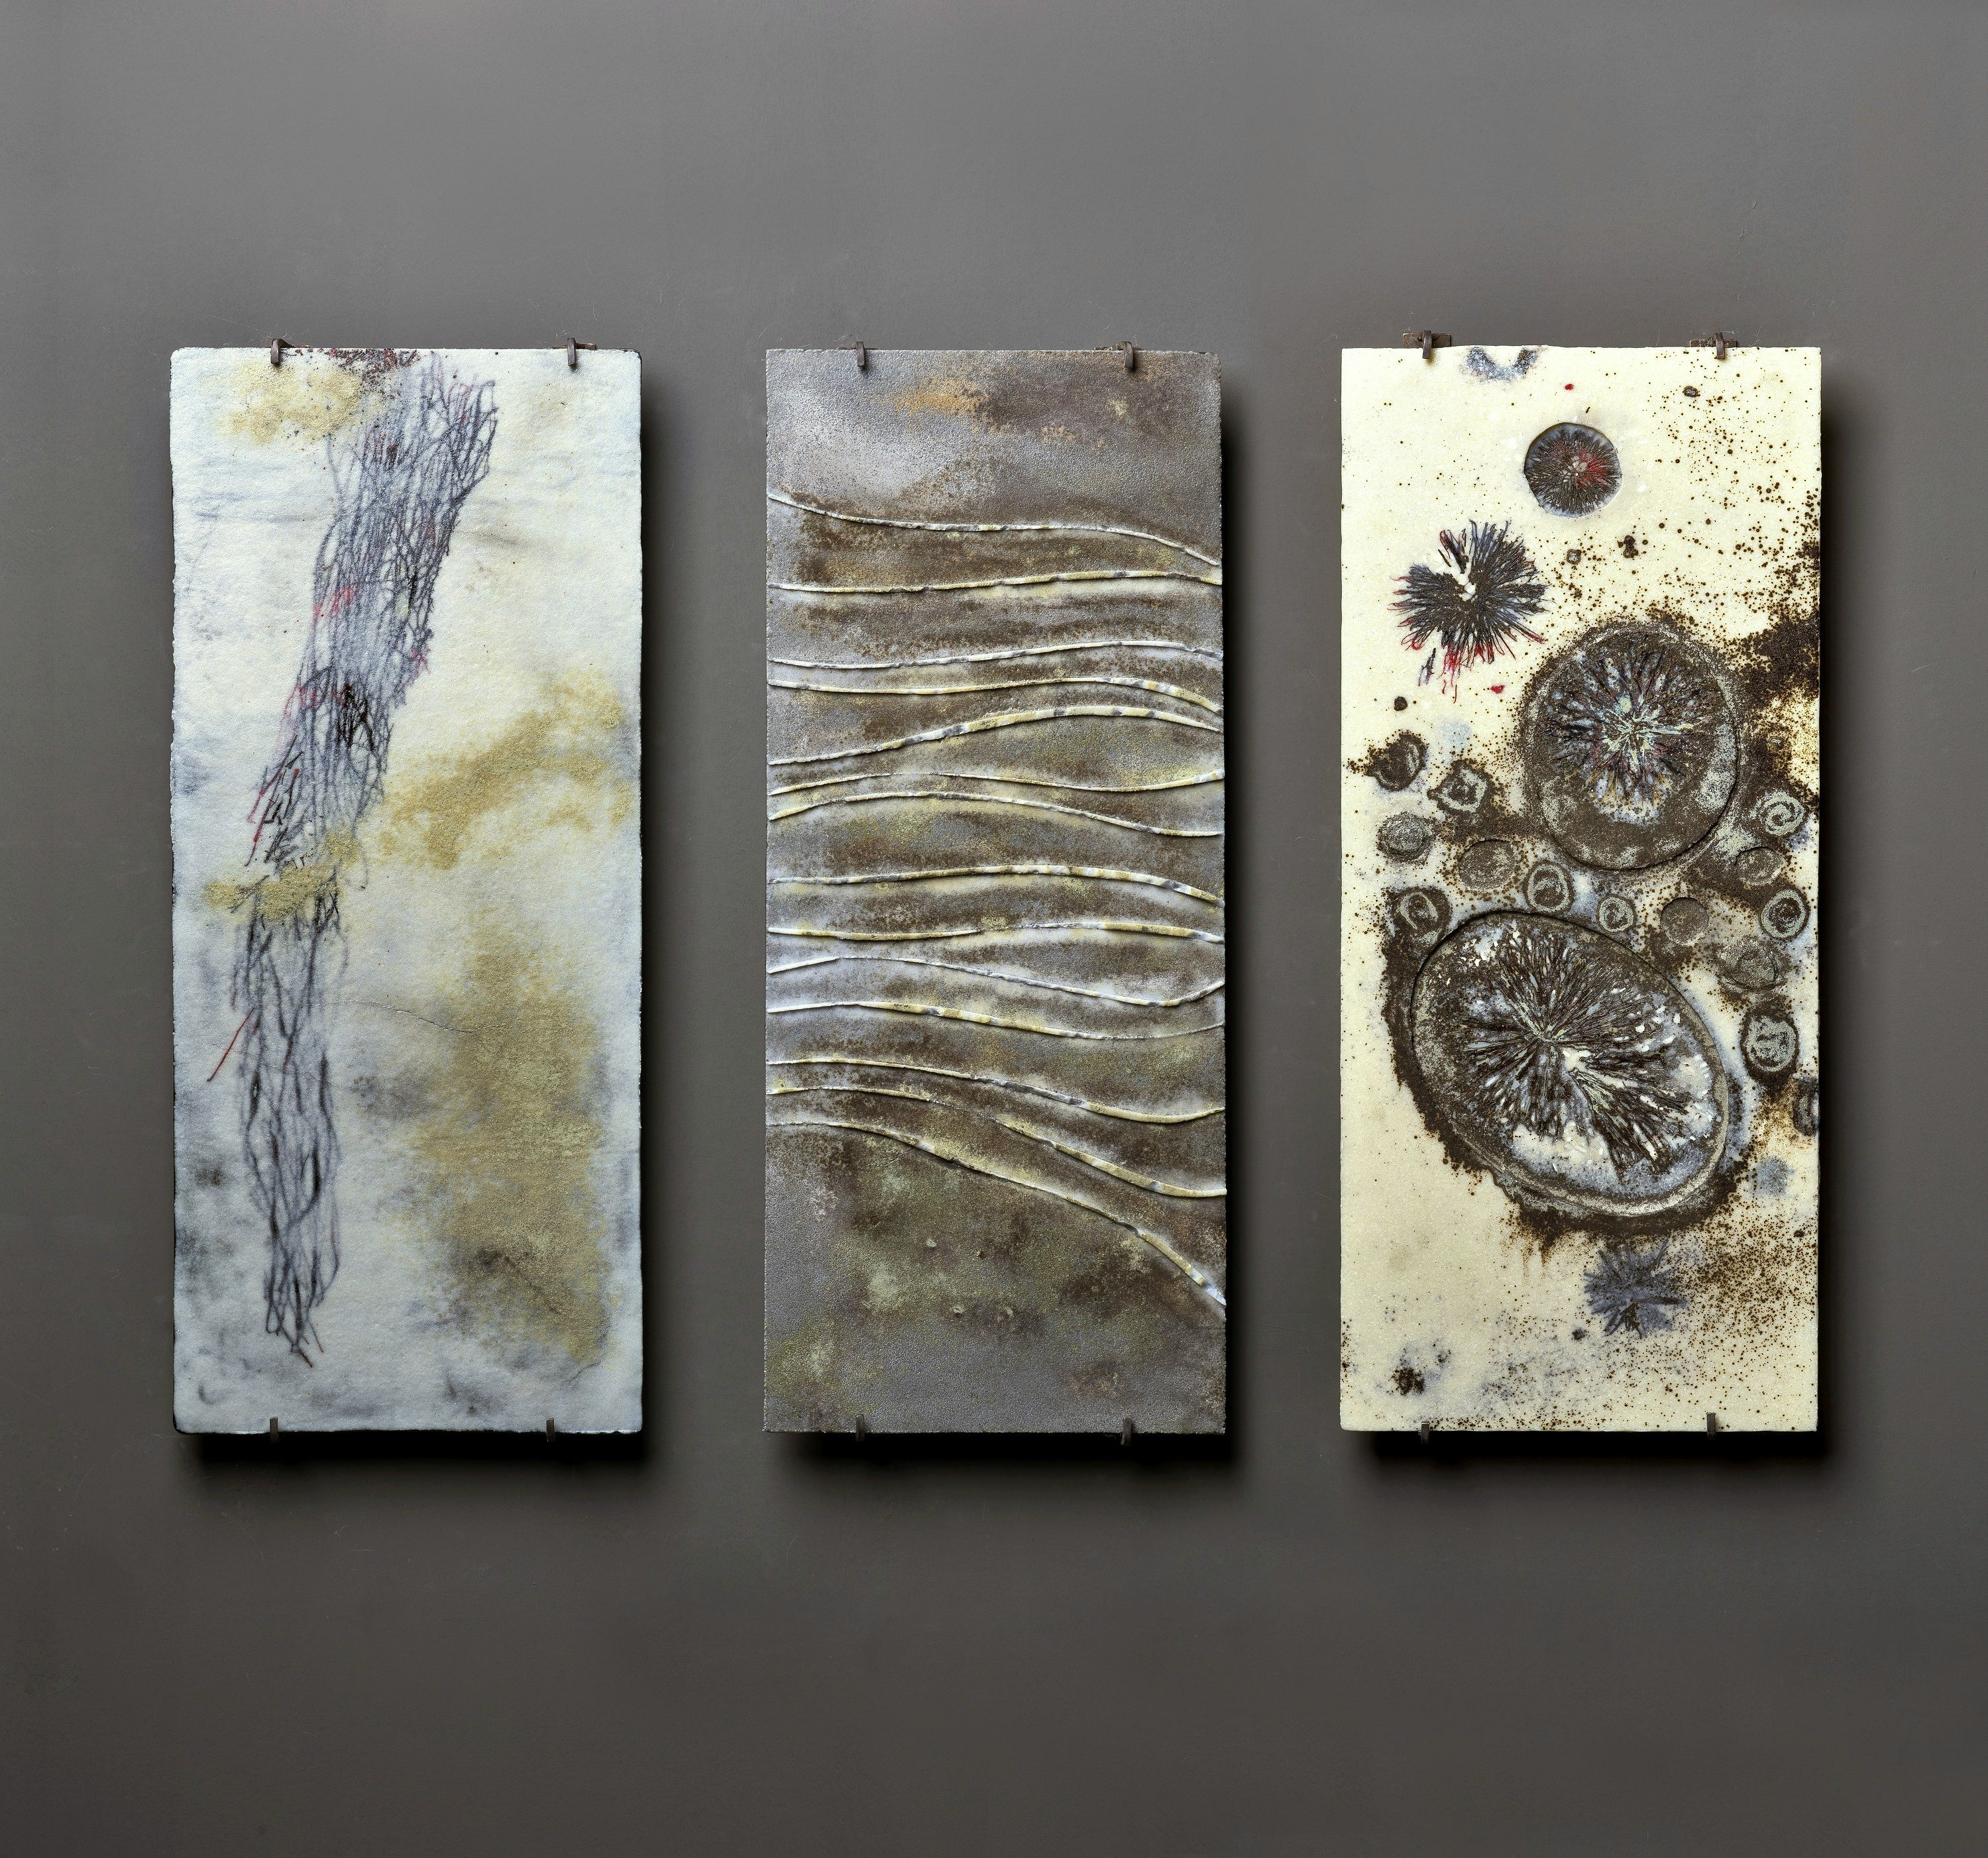 Desert Spirit Wall Panels 30x70 Cm Each Fused Glass And